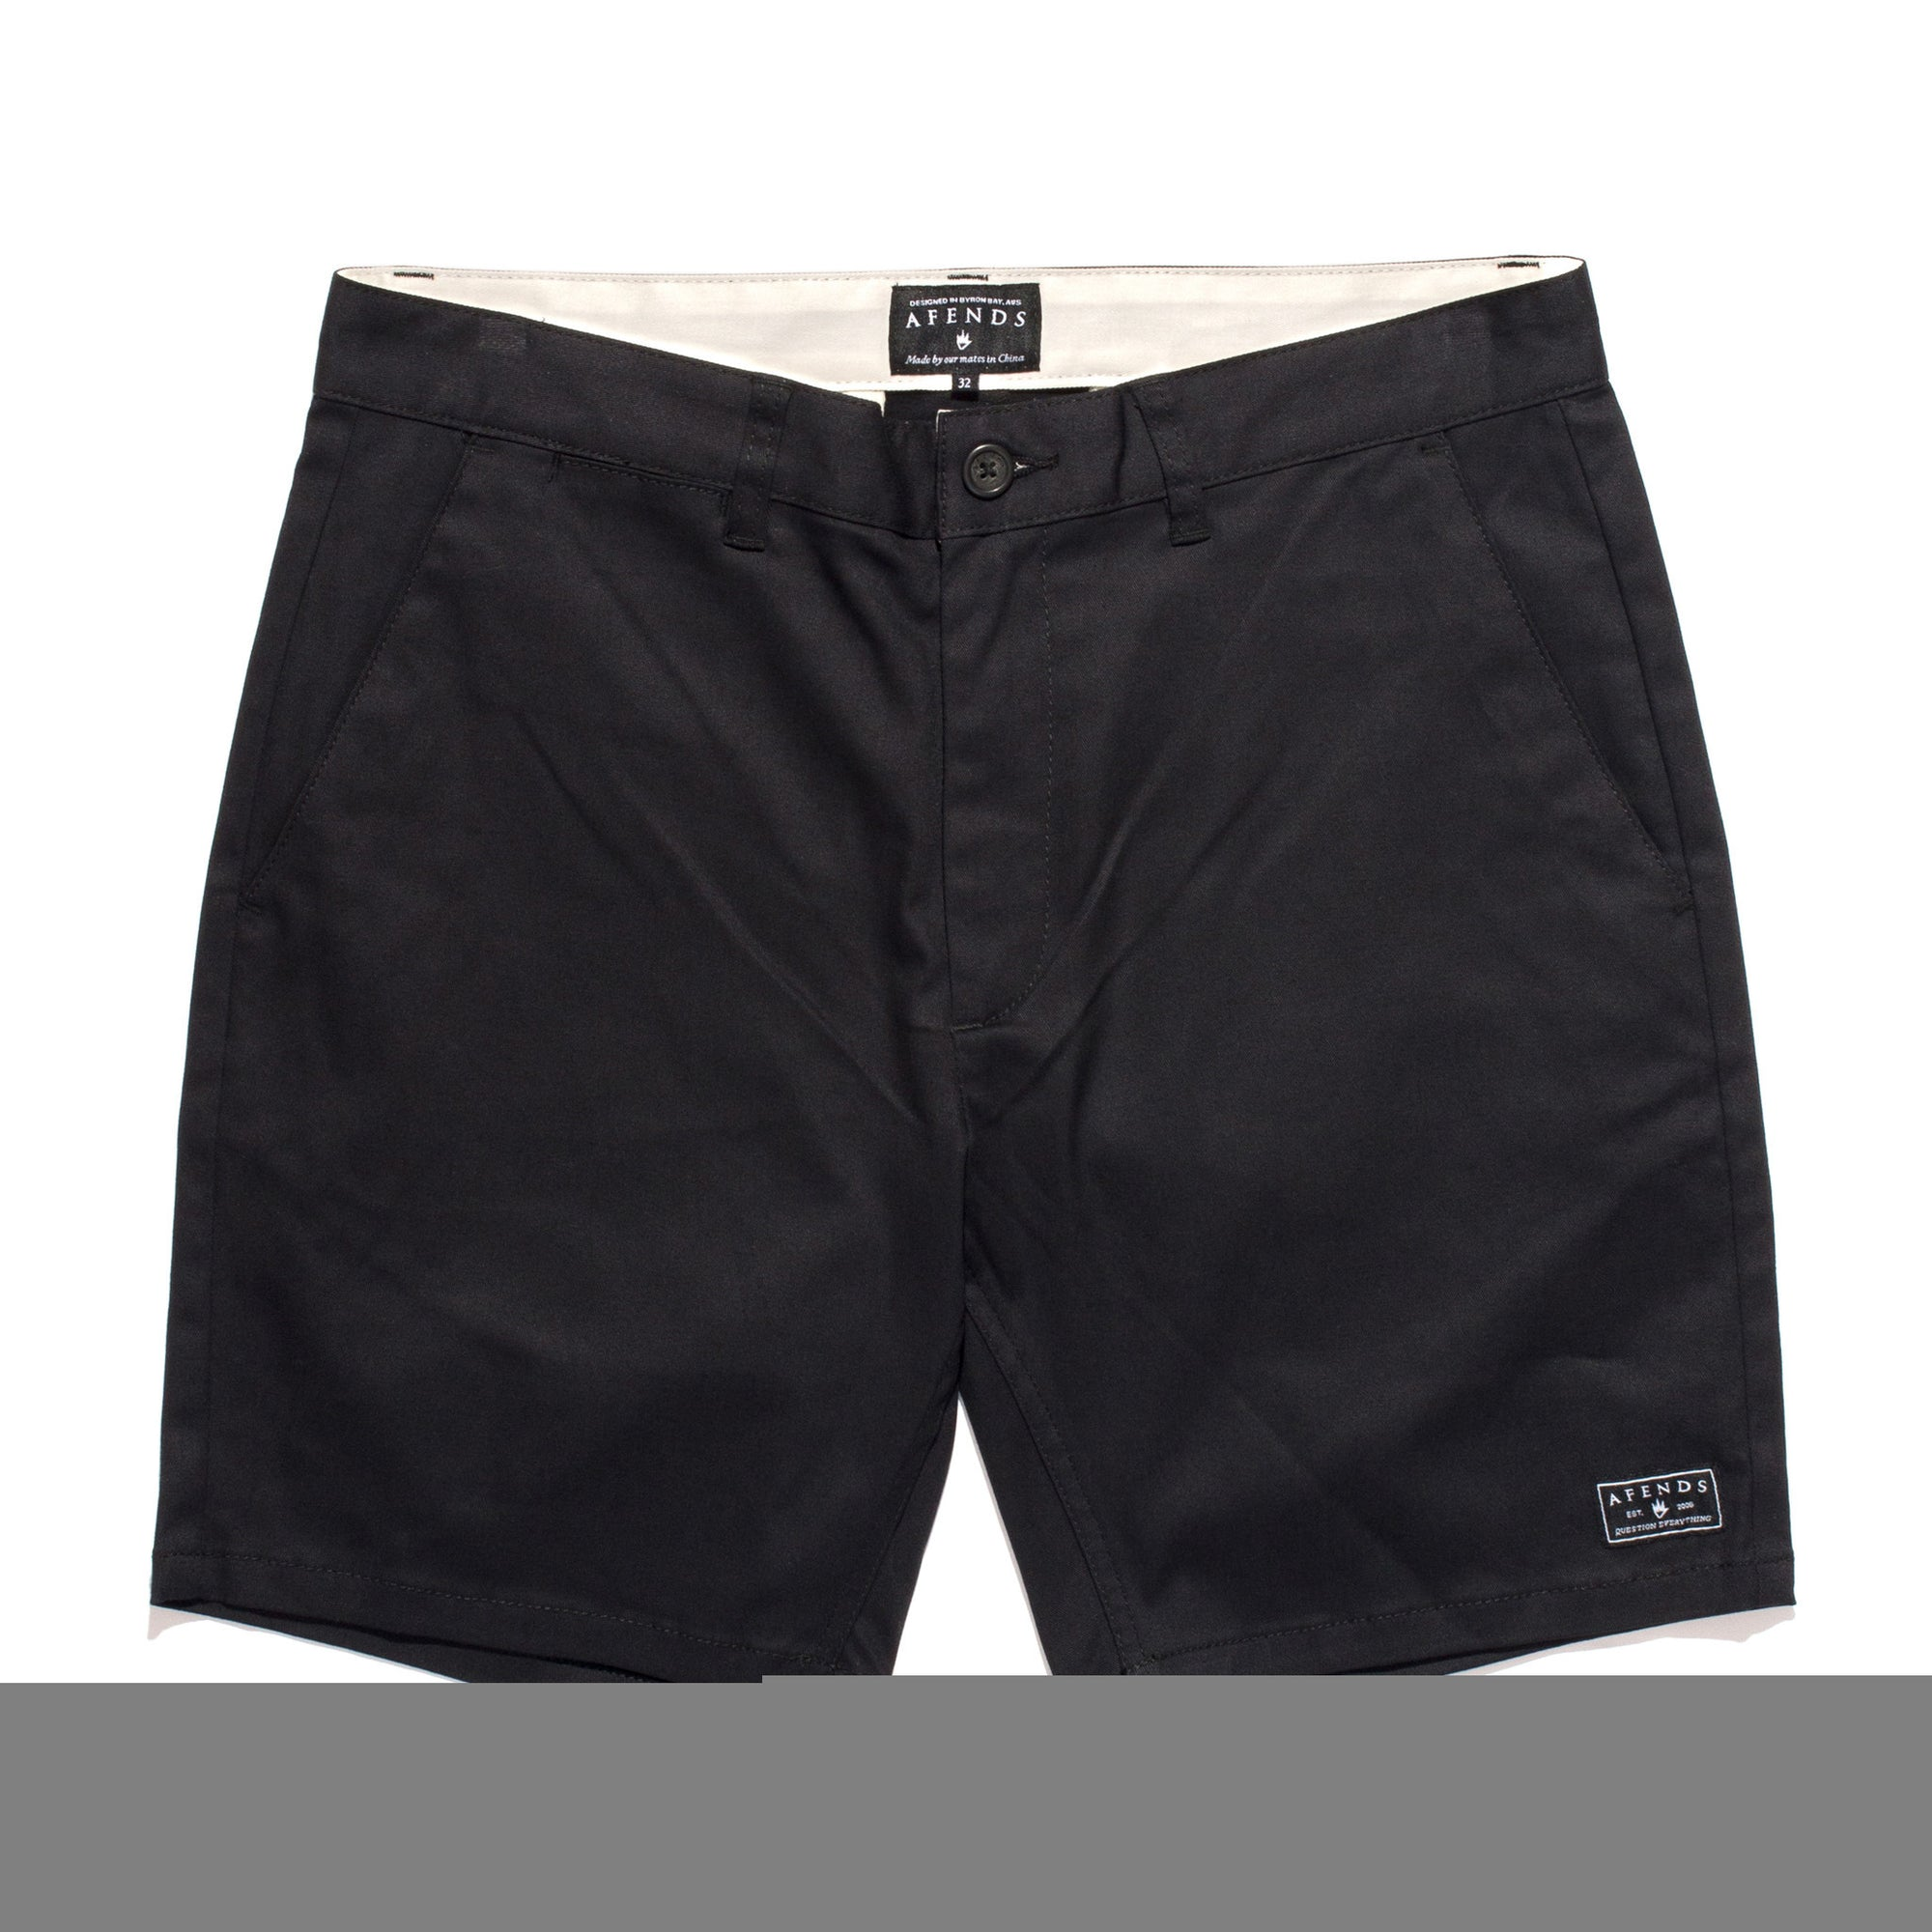 Afends Middy Chino Walkshorts - Forestwood Co